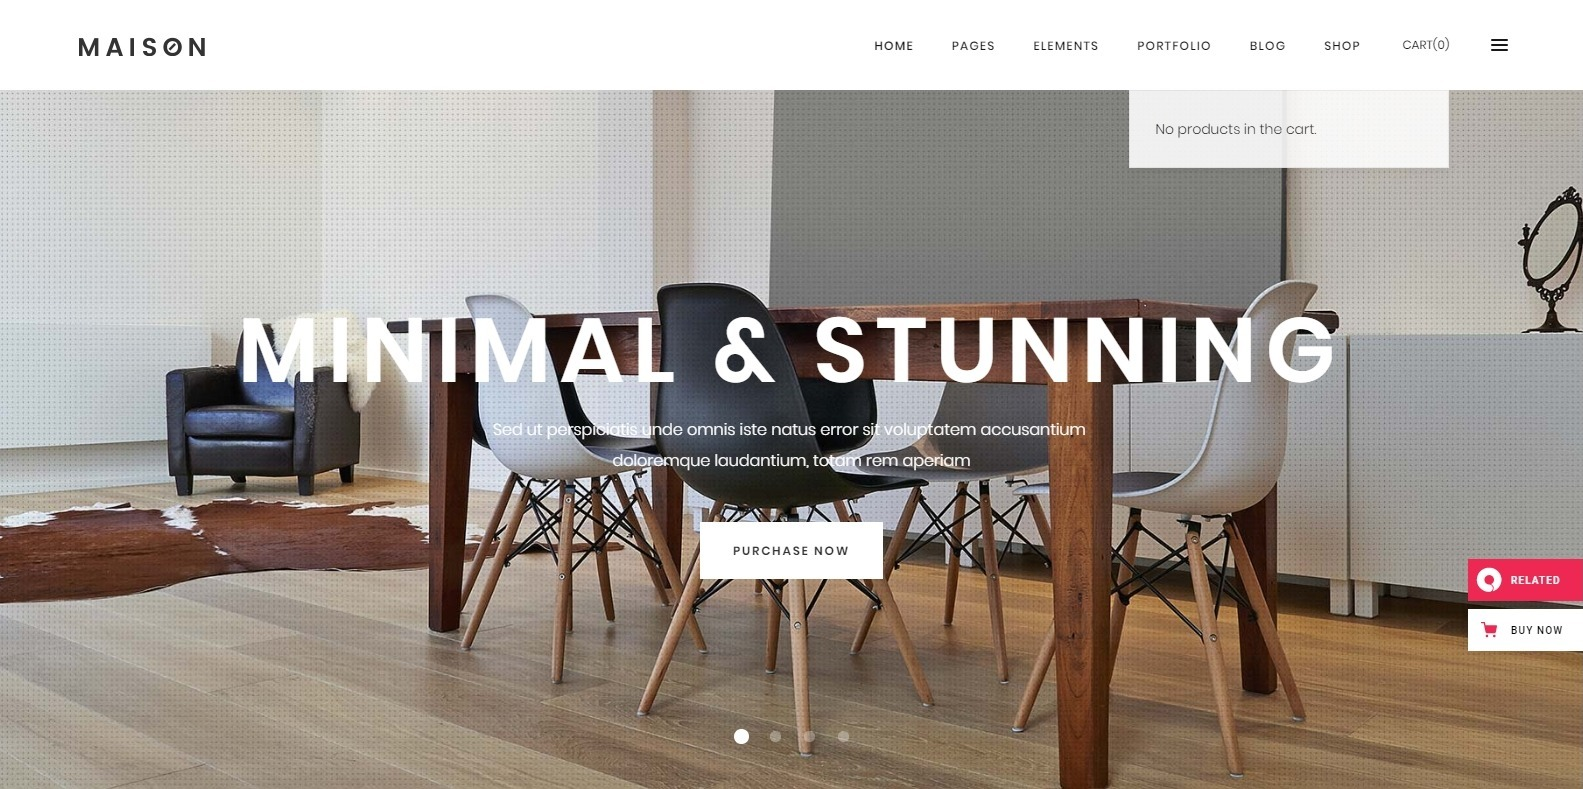 maison-interior-design-wordpress-theme